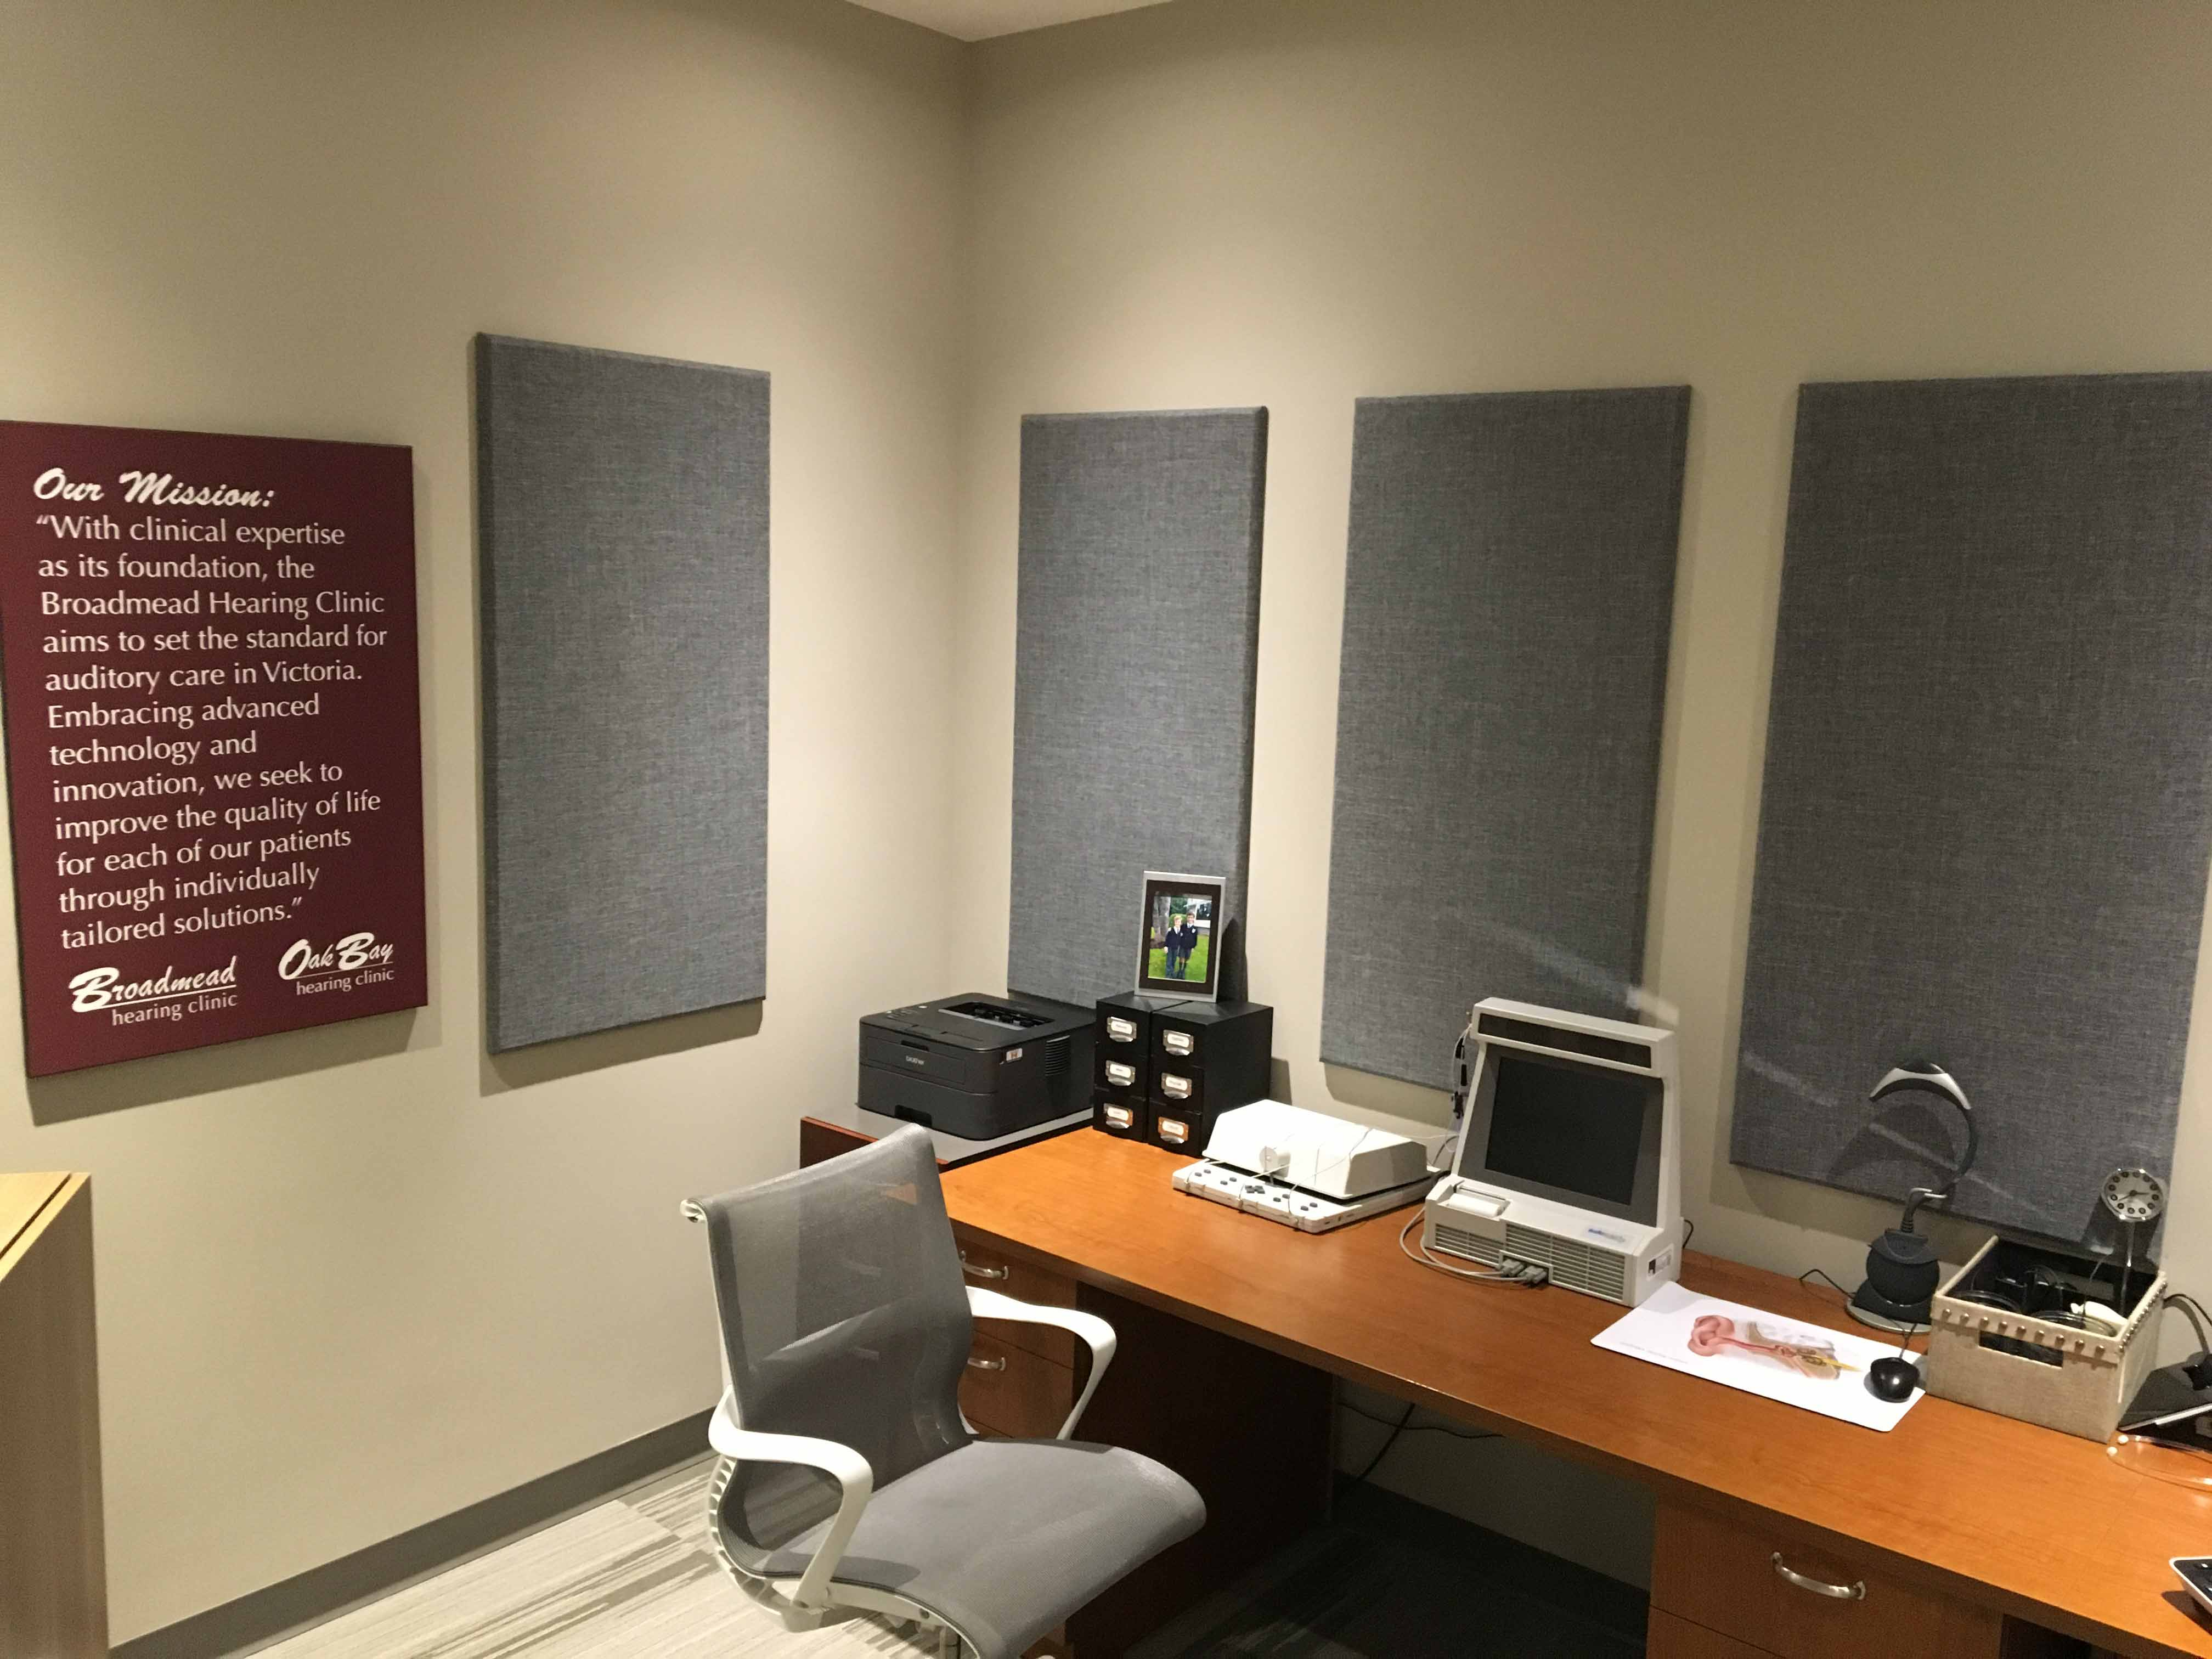 Broadway panels in Broadmead Audiology center